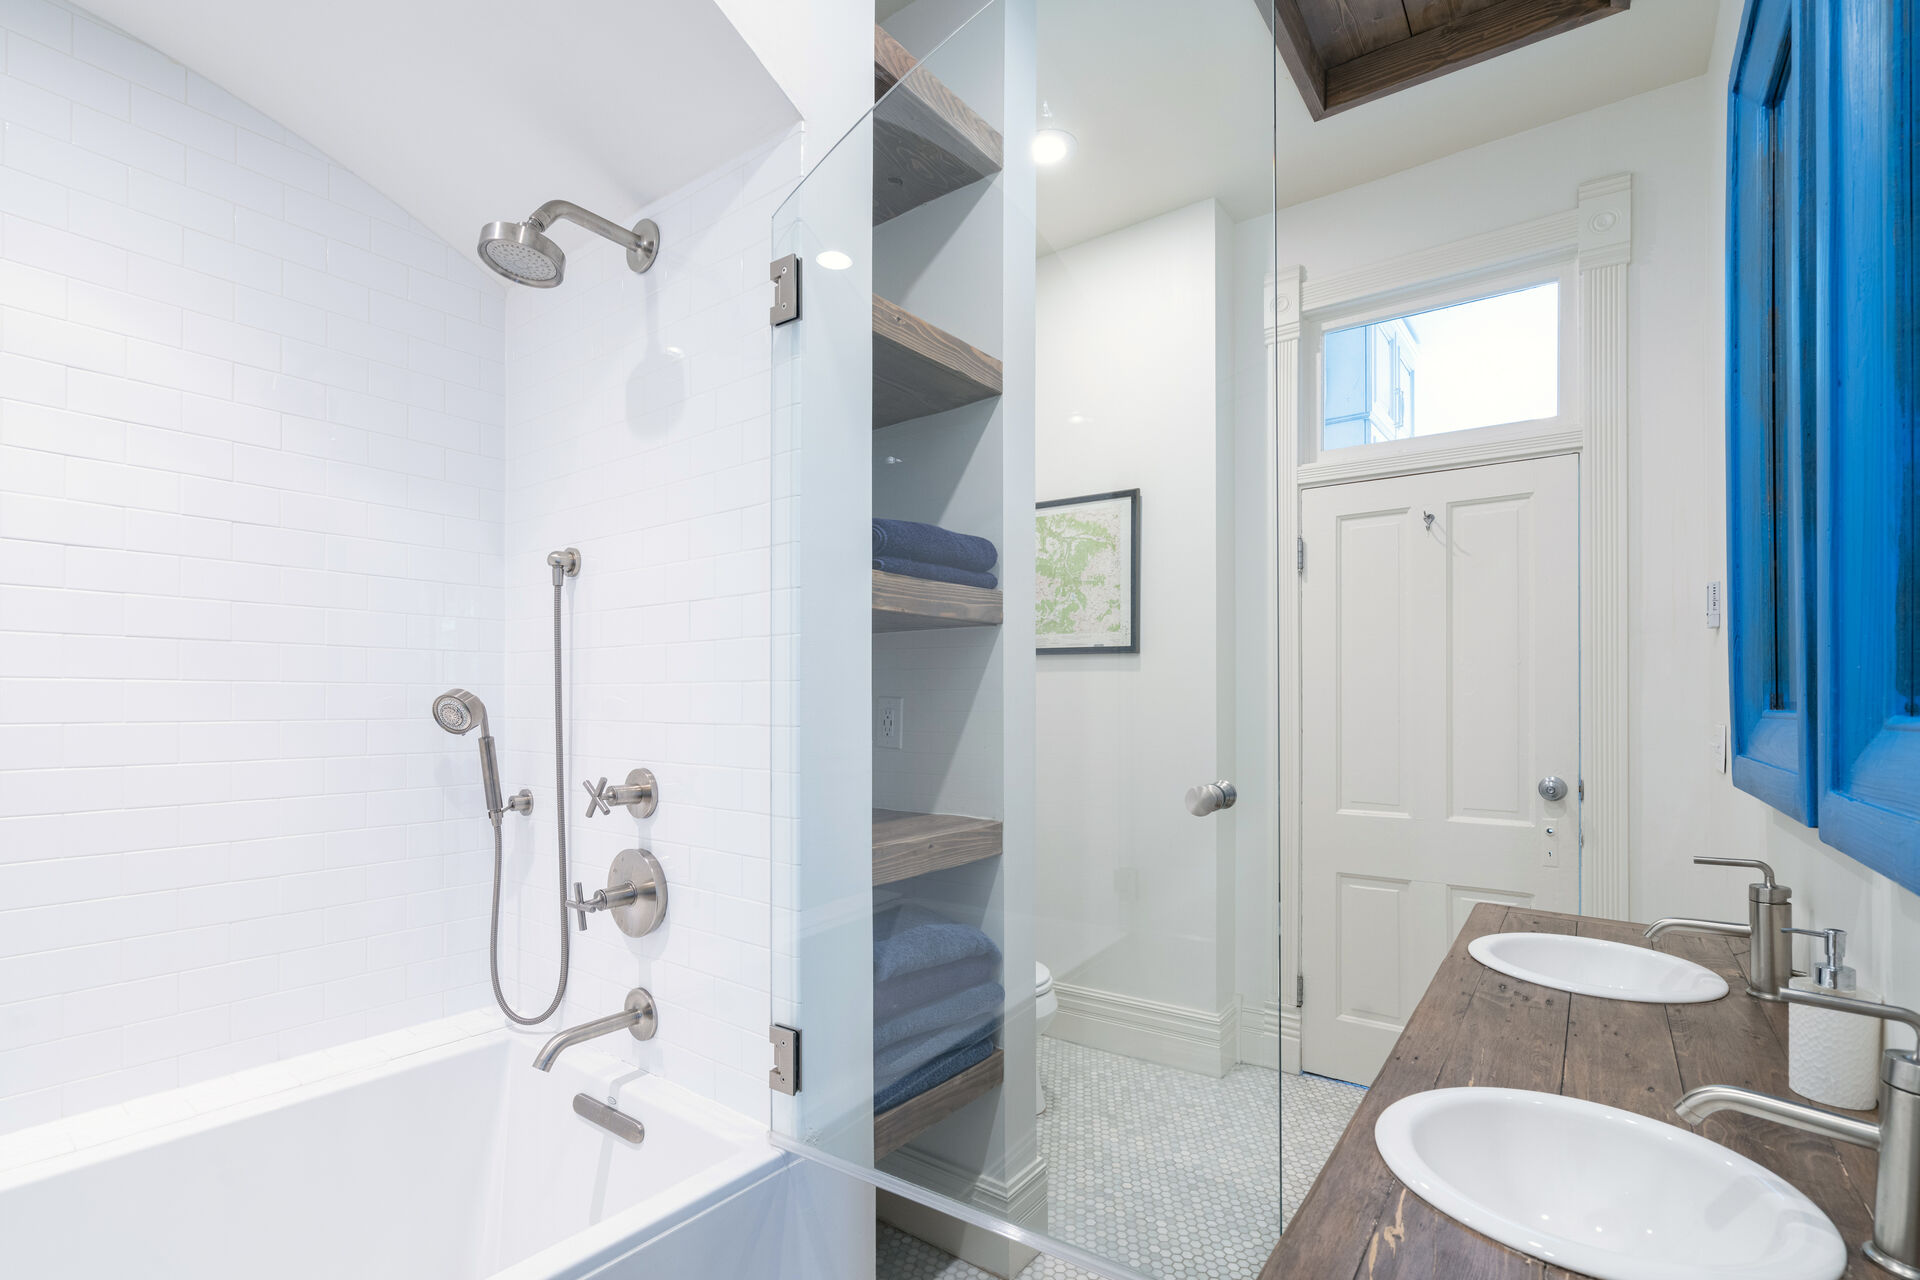 Bathroom with glass-doored shower, double vanity sinks, and shelves built into the walls.